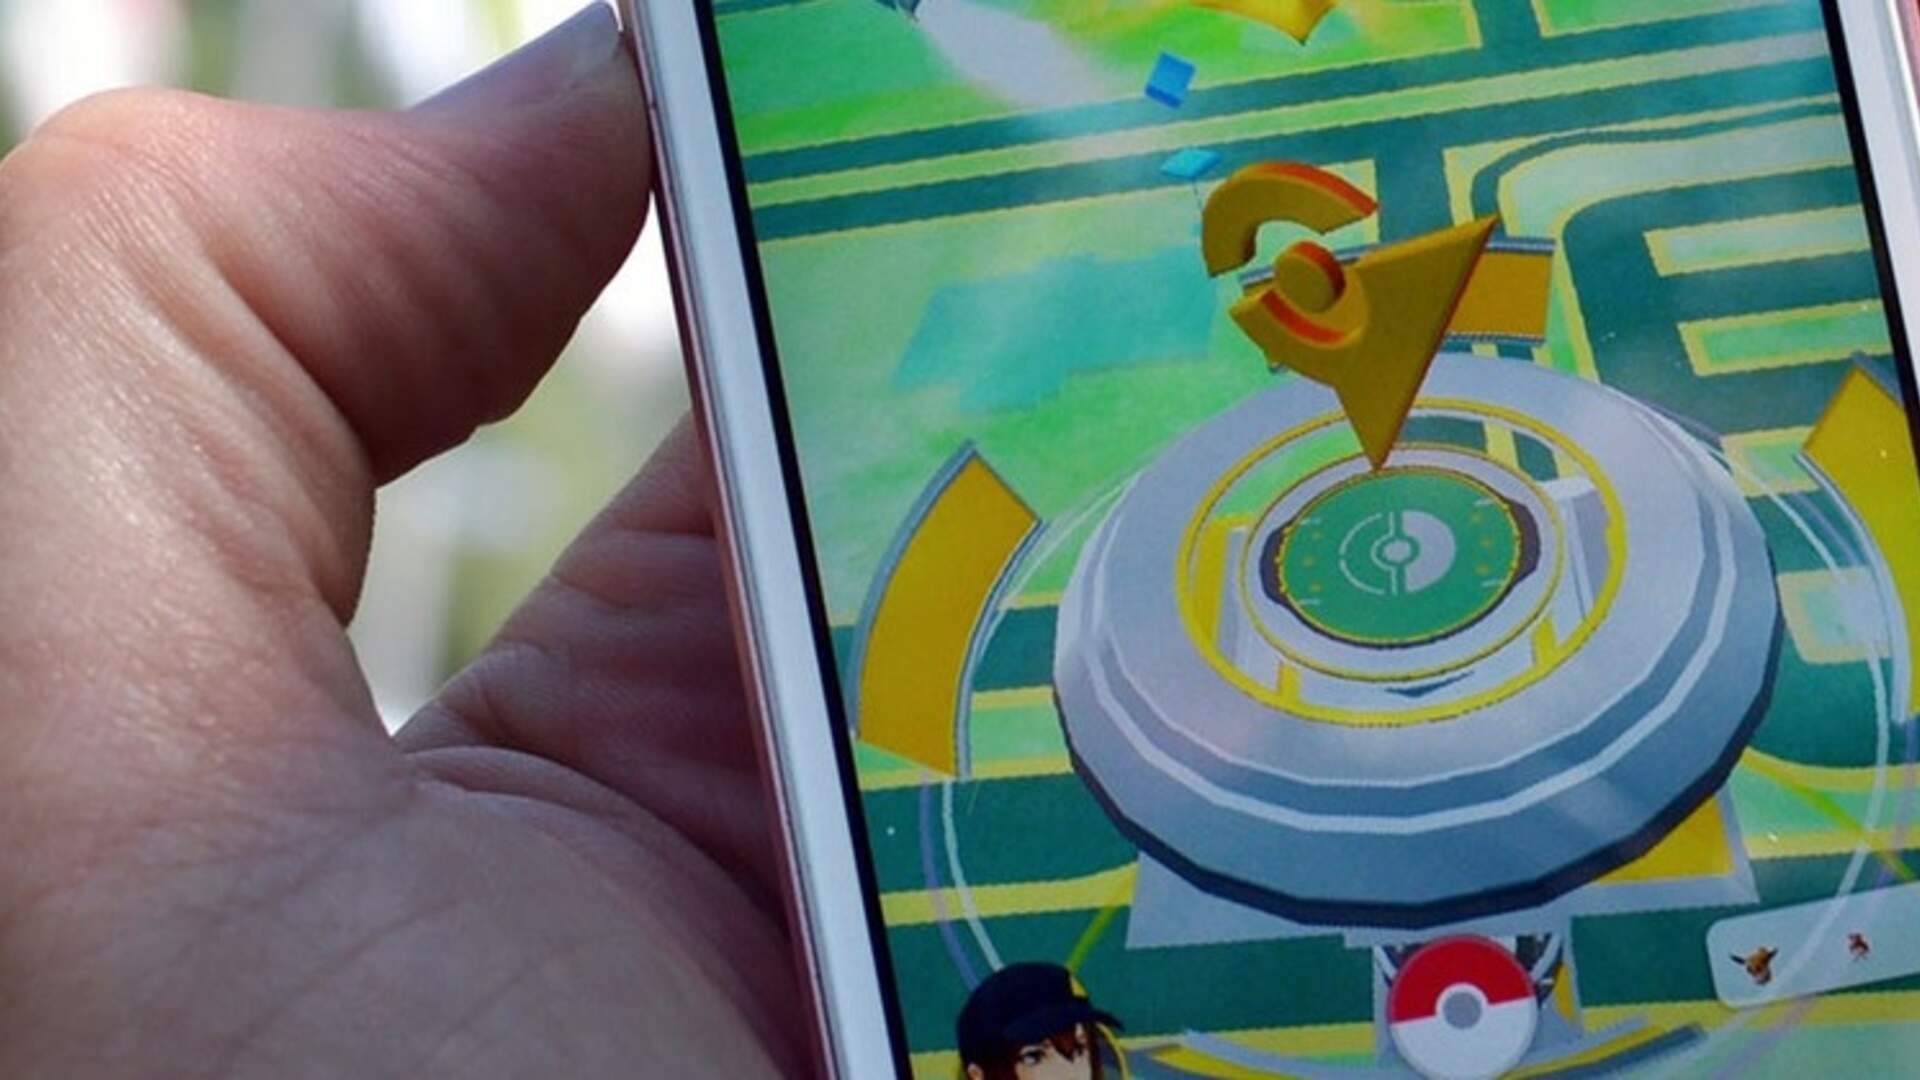 October Pokémon GO Update Adds Catch Bonuses to Medals